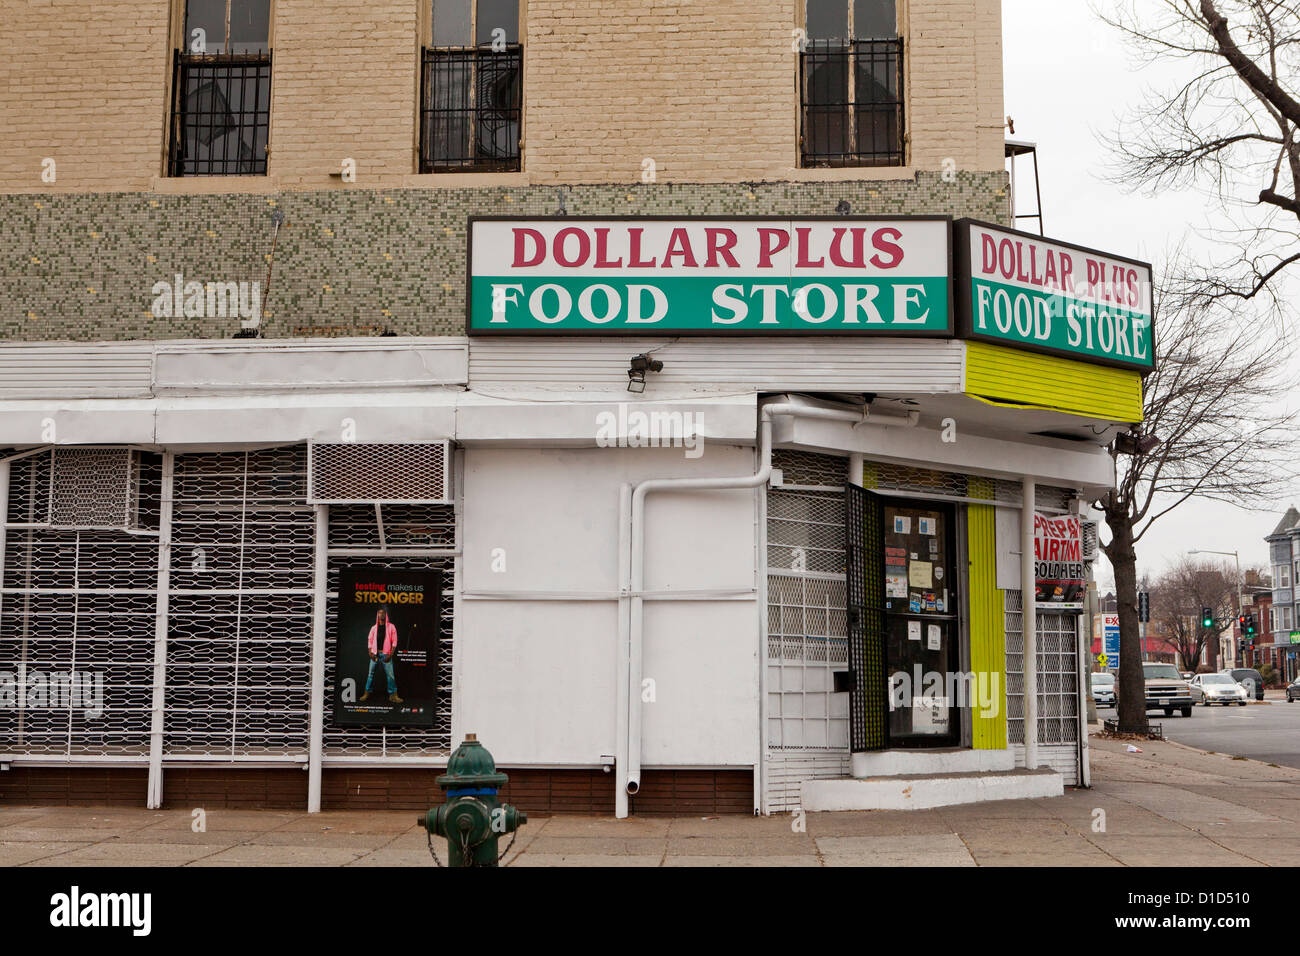 Dollar food store - Stock Image